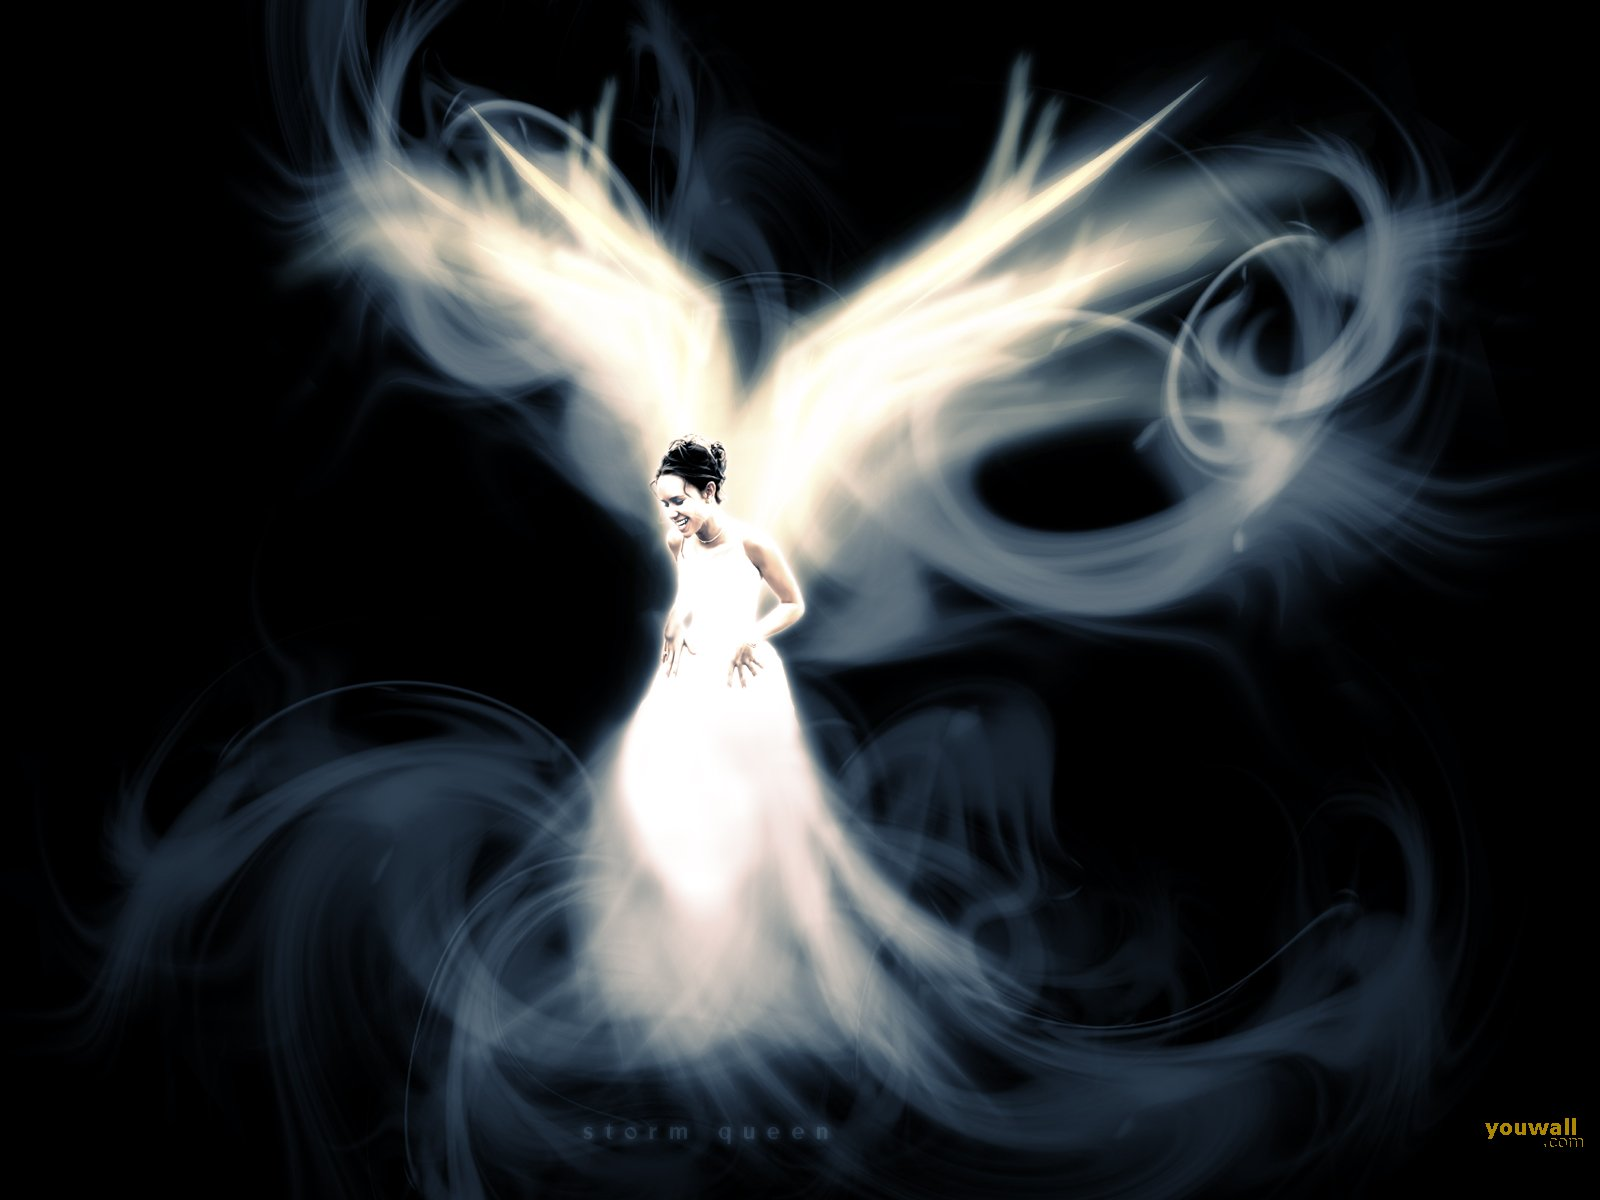 YouWall   Angel Wallpaper   wallpaperwallpapersfree wallpaperphoto 1600x1200